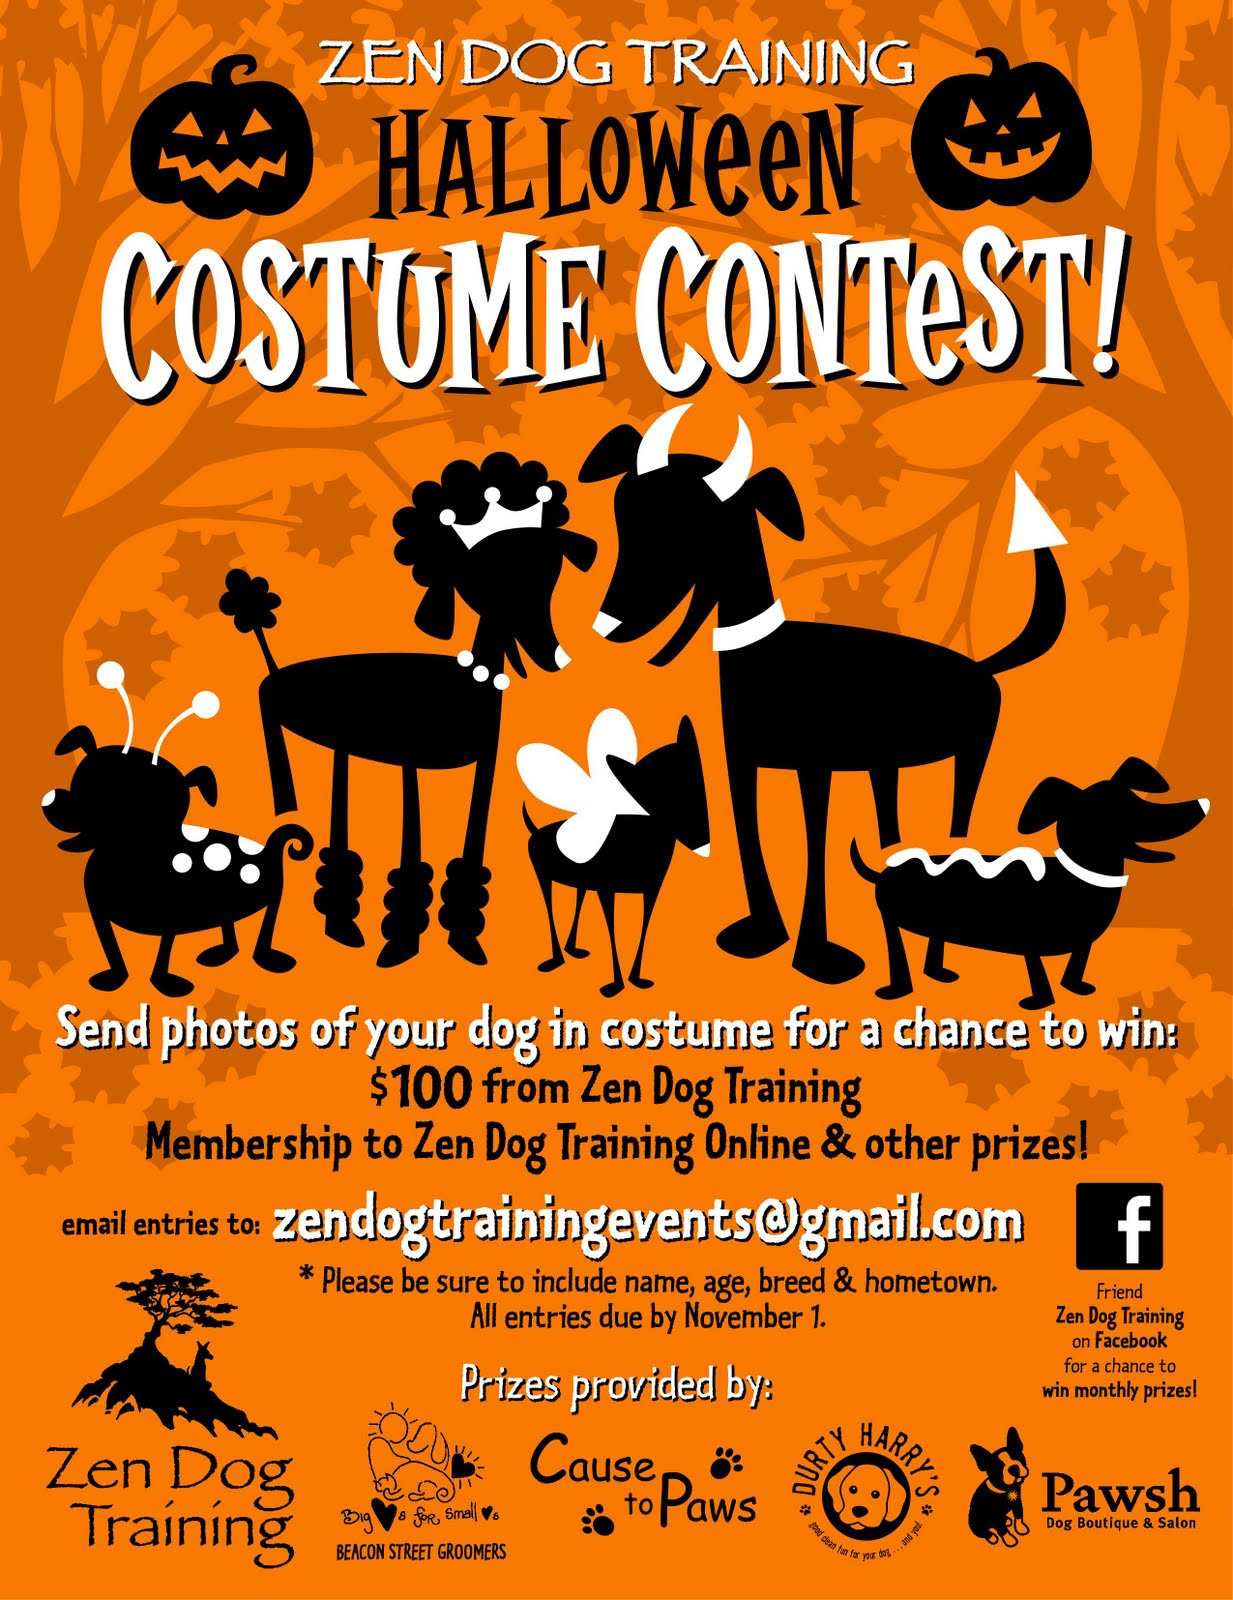 Zen Dog Training Blog: It's a Halloween Costume Contest!